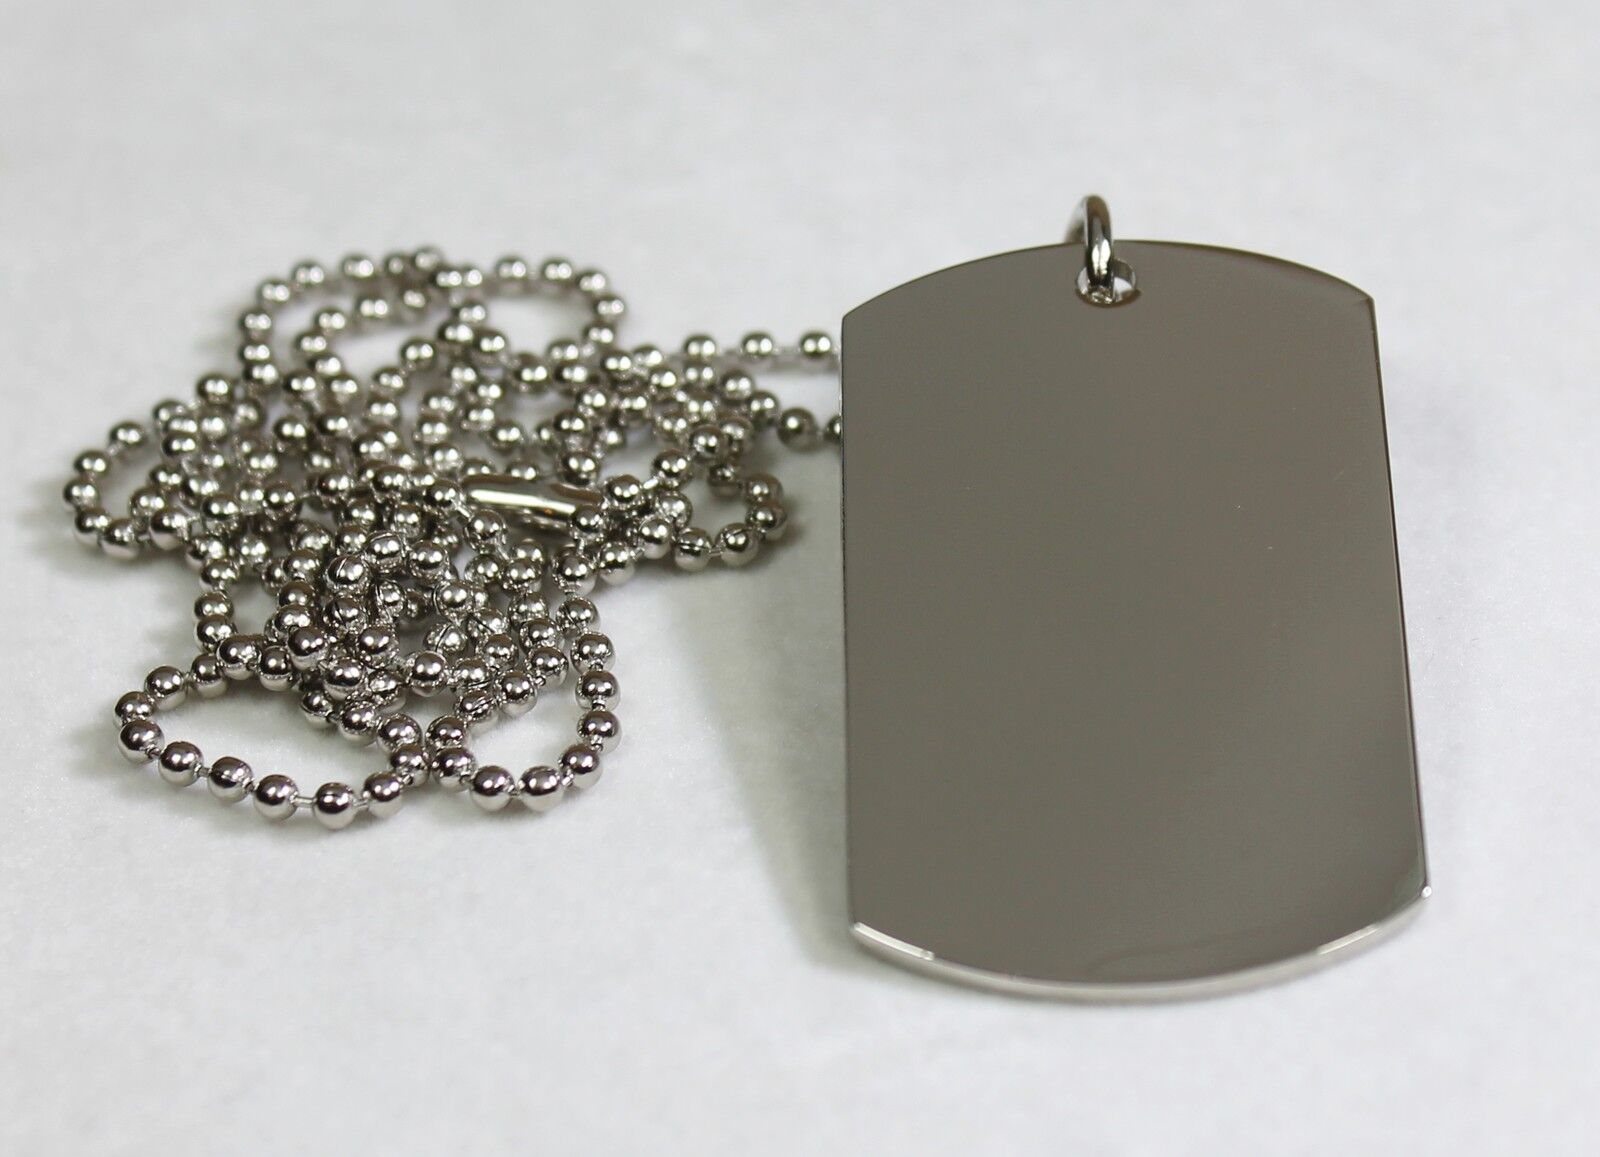 Stainless Steel Blank Dog Tag Pendant Necklace Ebay